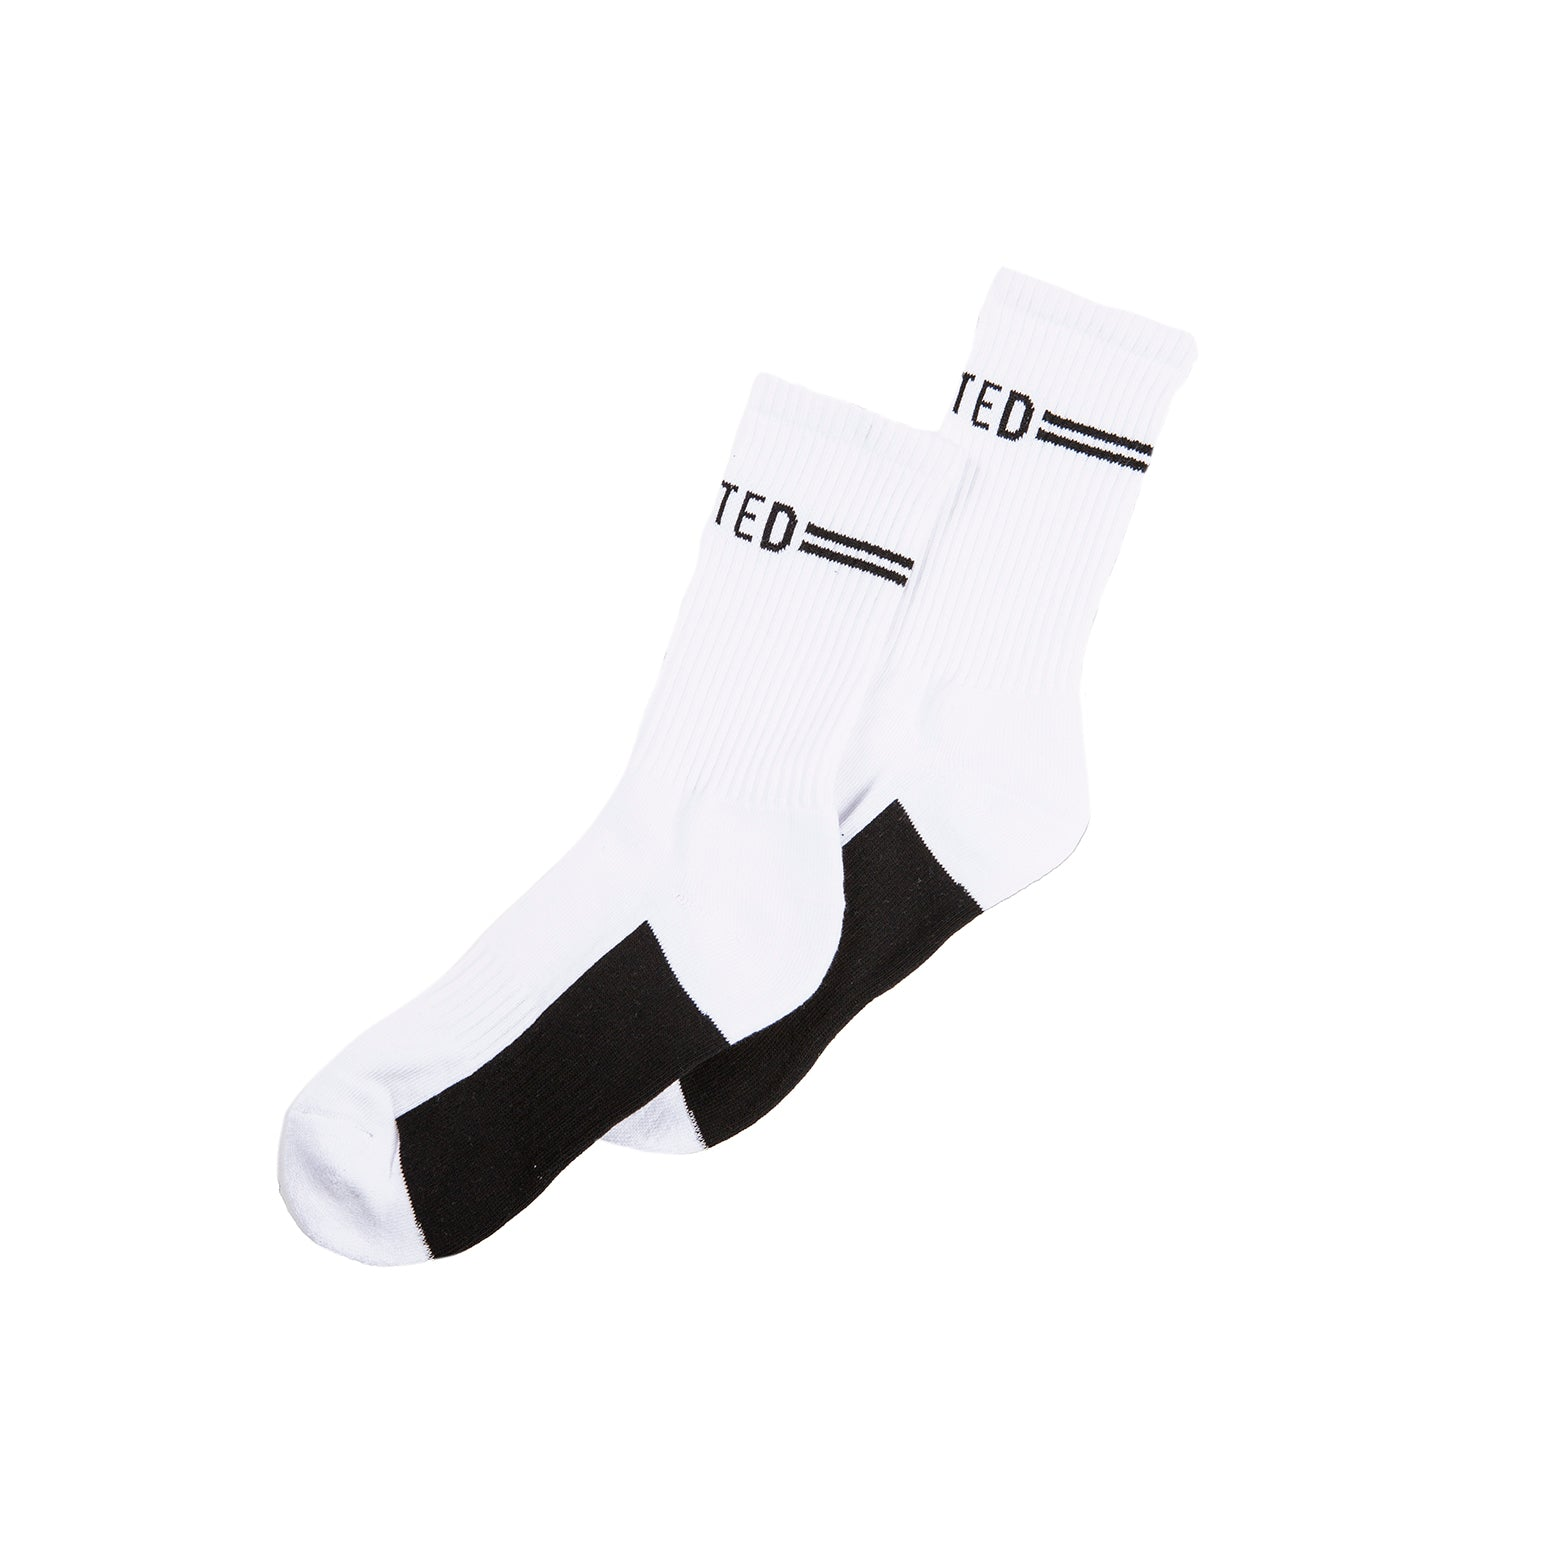 United Signature Socks - White